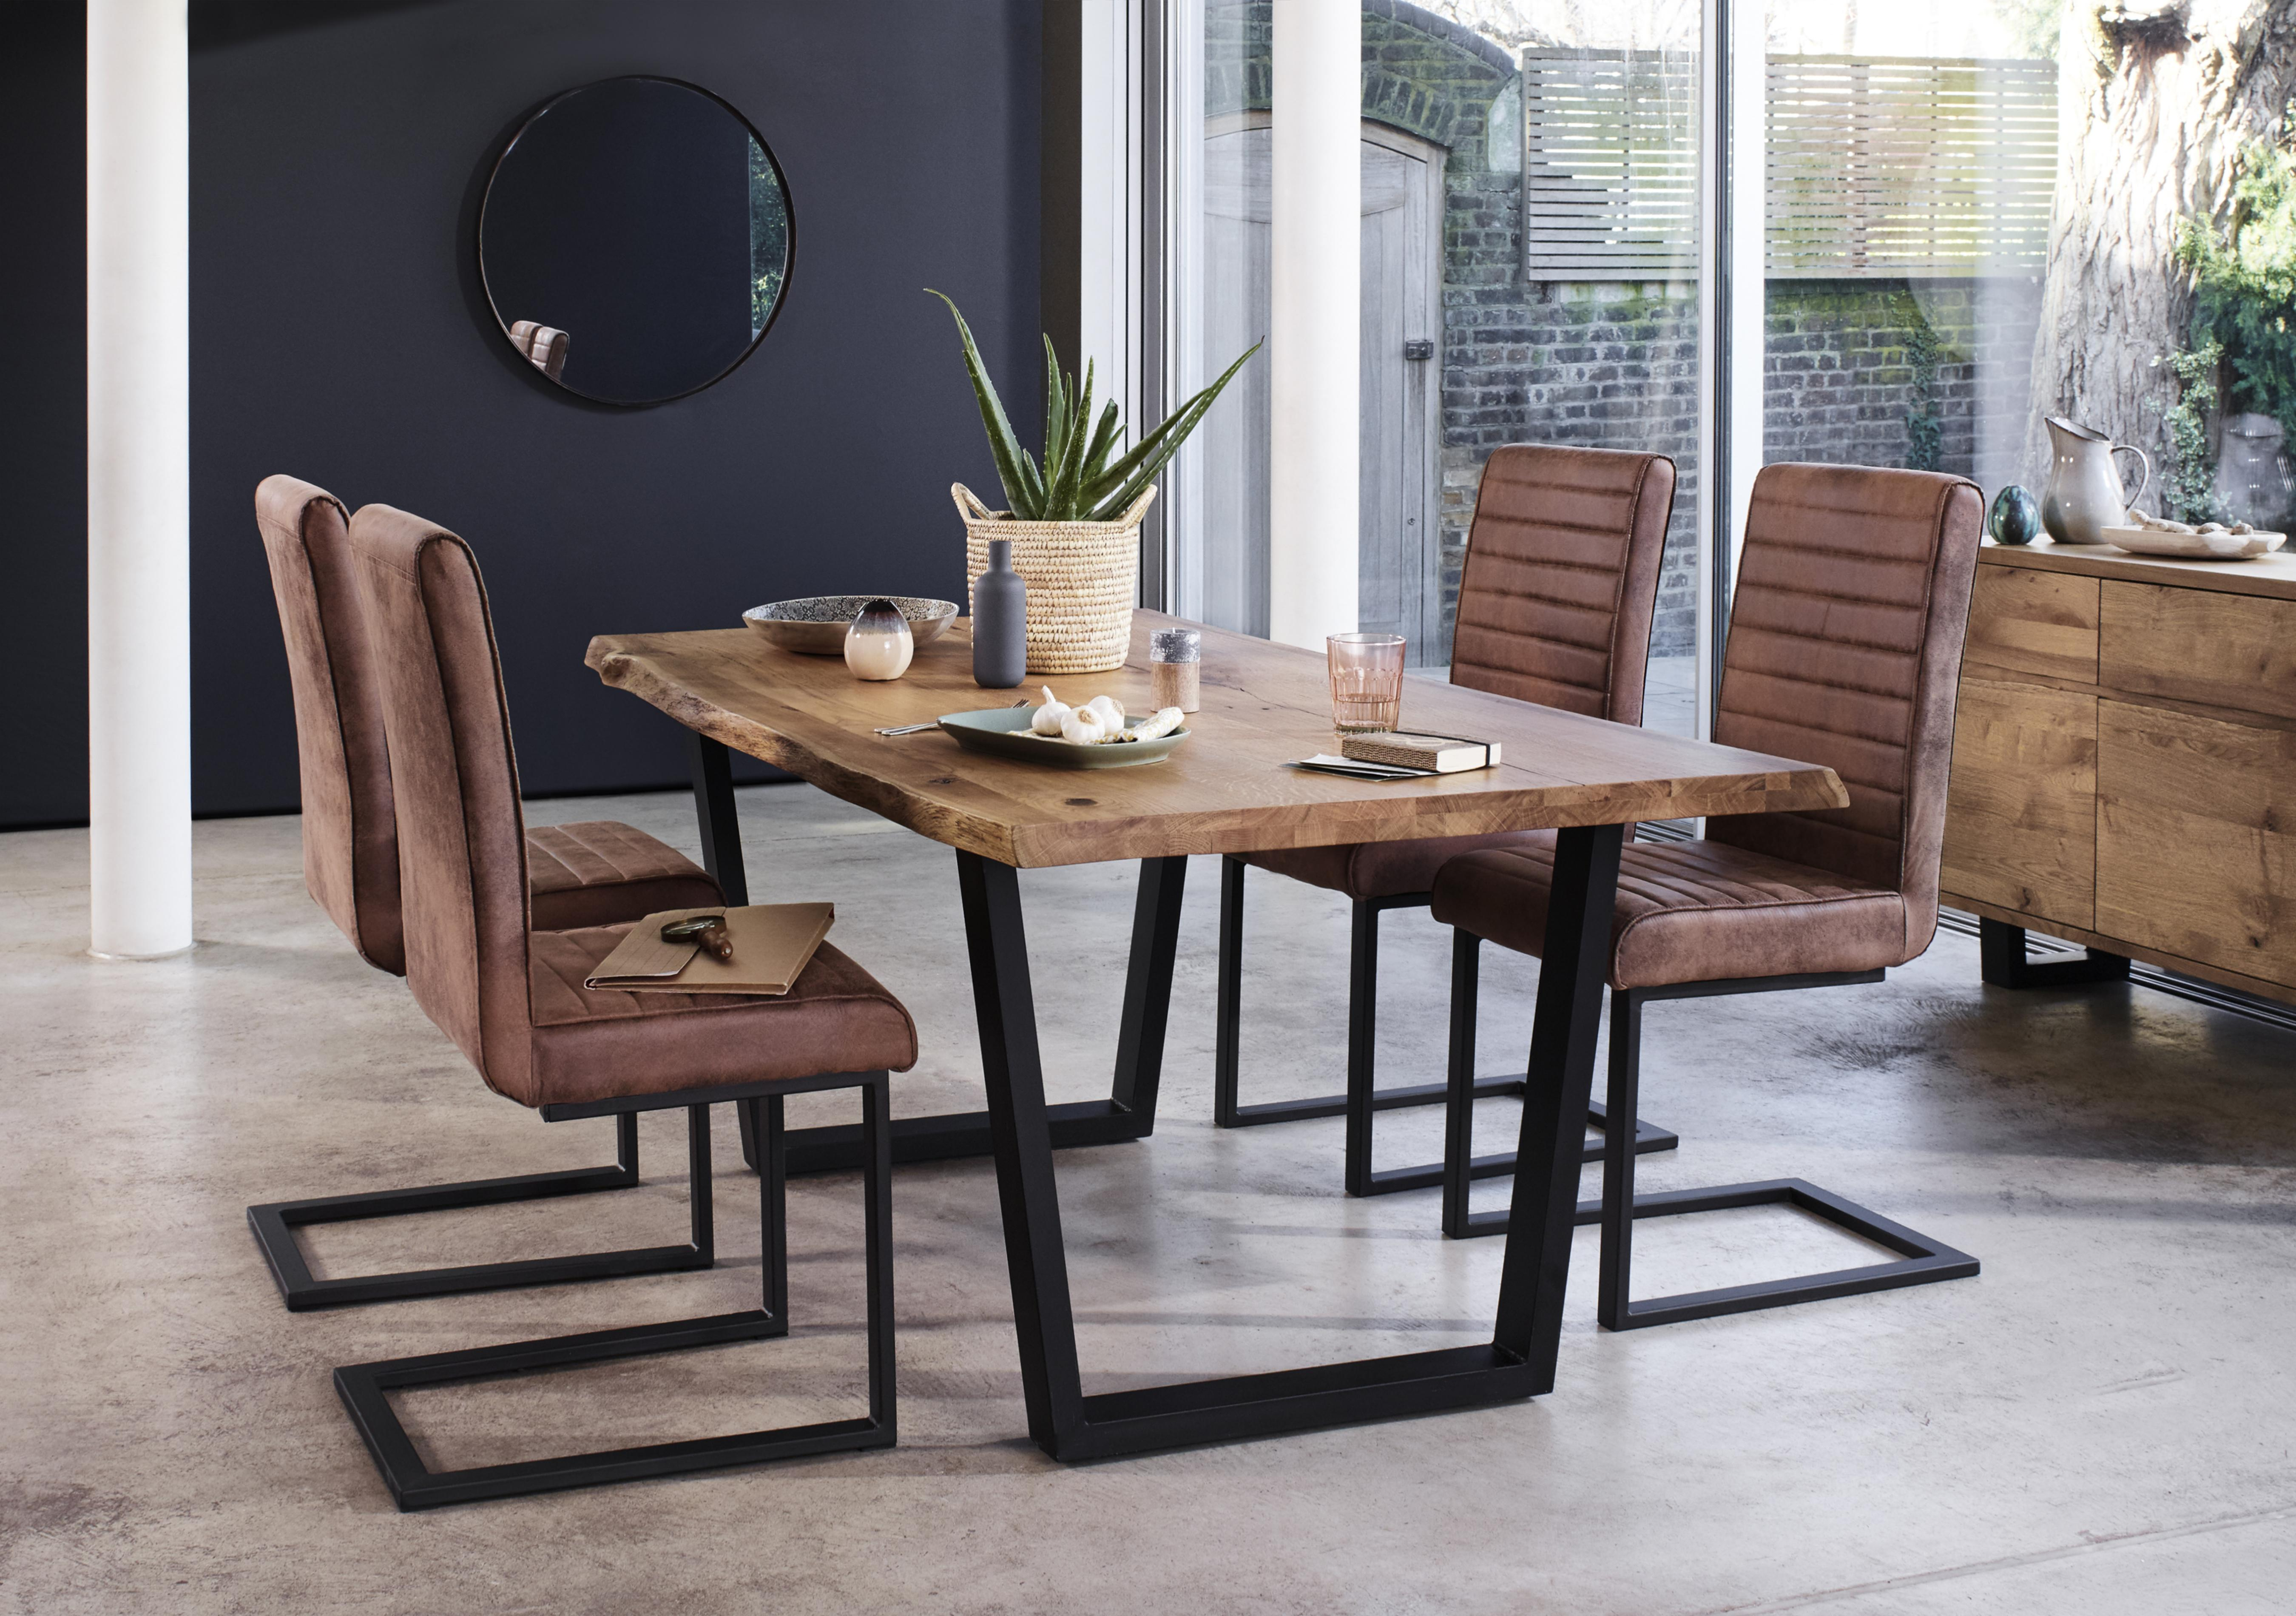 Corndell Jagger Dining Table with Metal Legs and 4 Dining Chairs & Dining table and chairs sets - Furniture Village